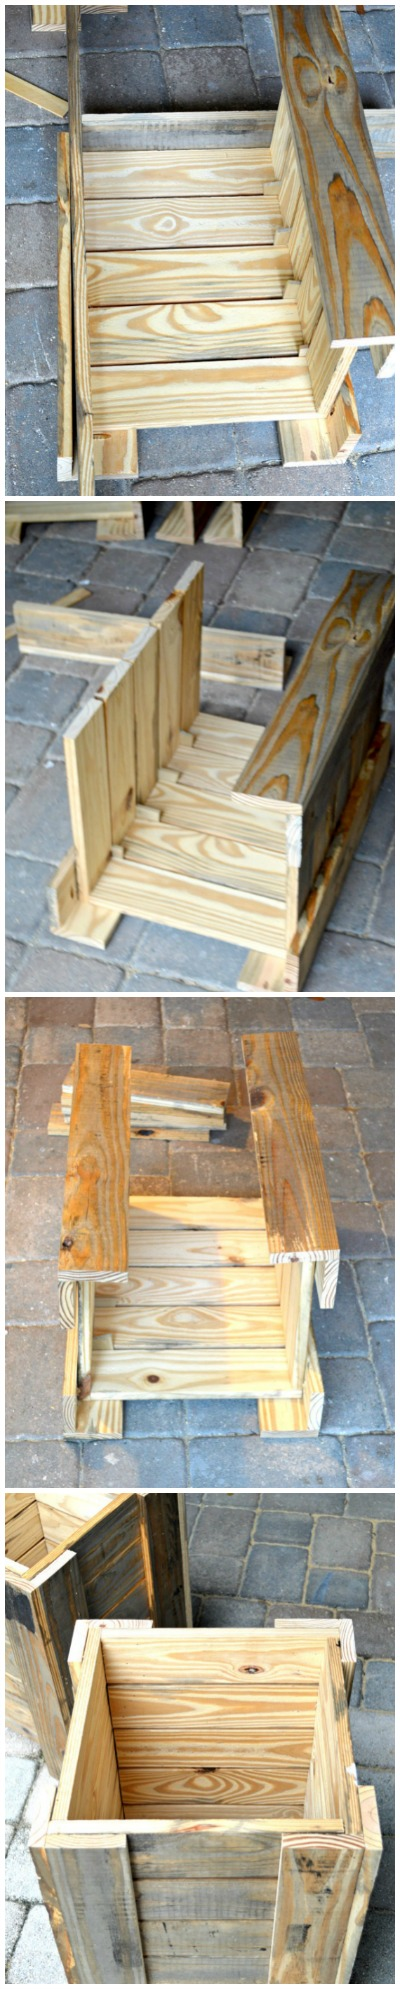 diy cedar to pinterest a wooden build of planter pin woodworking how image box outdoor